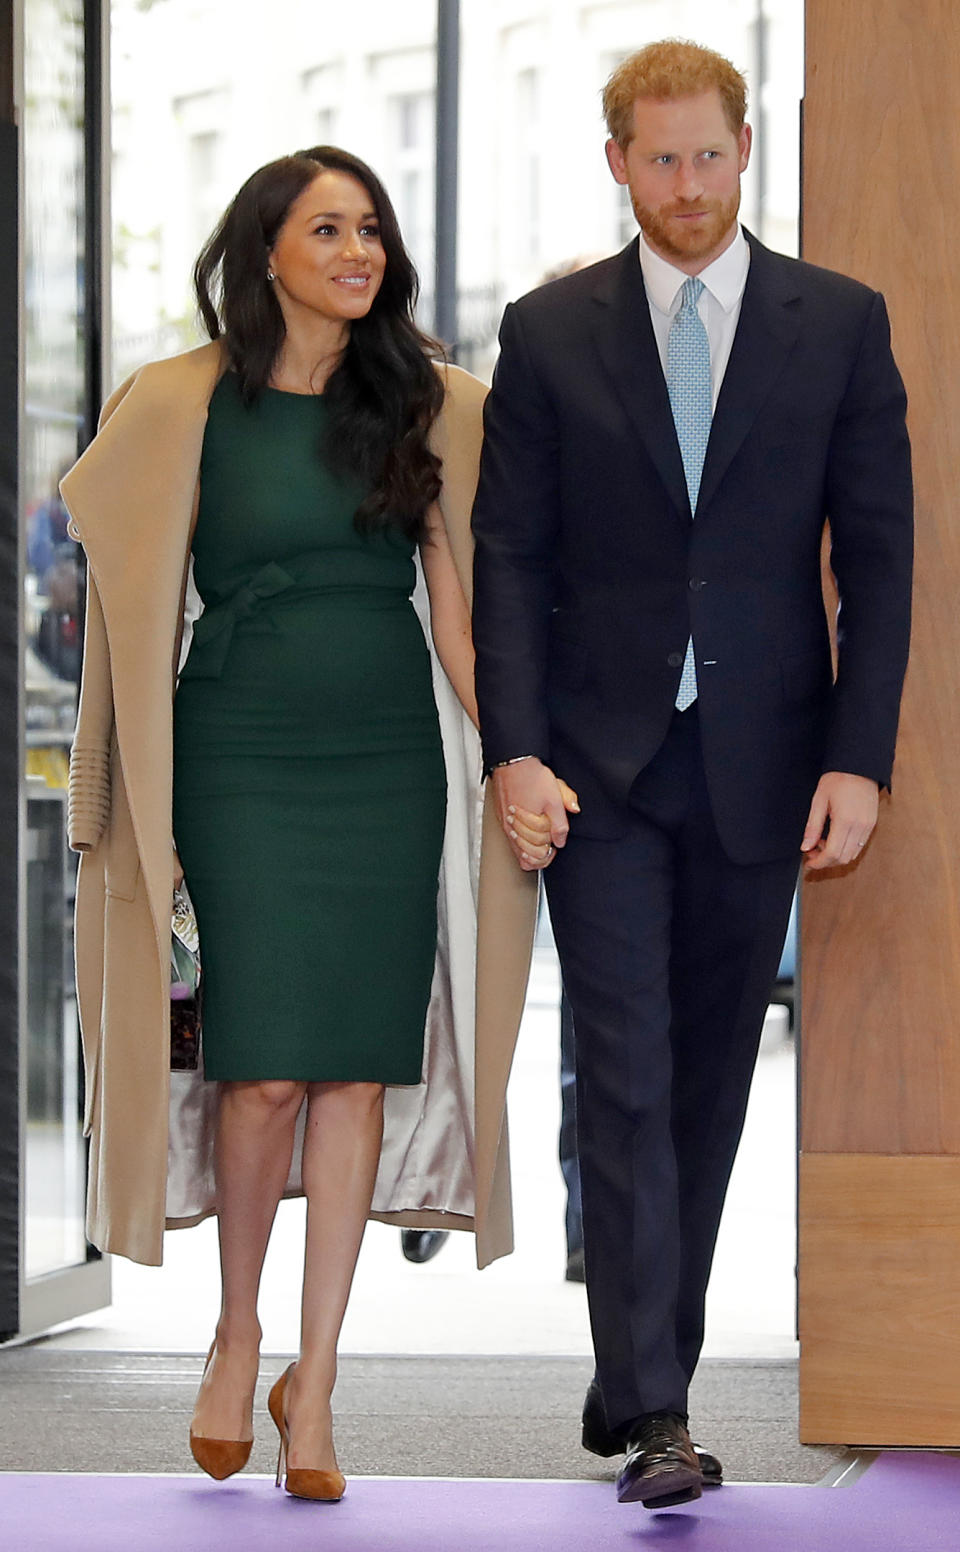 The Duke and Duchess of Sussex arrive at the annual WellChild Awards in London. [Photo: Getty]